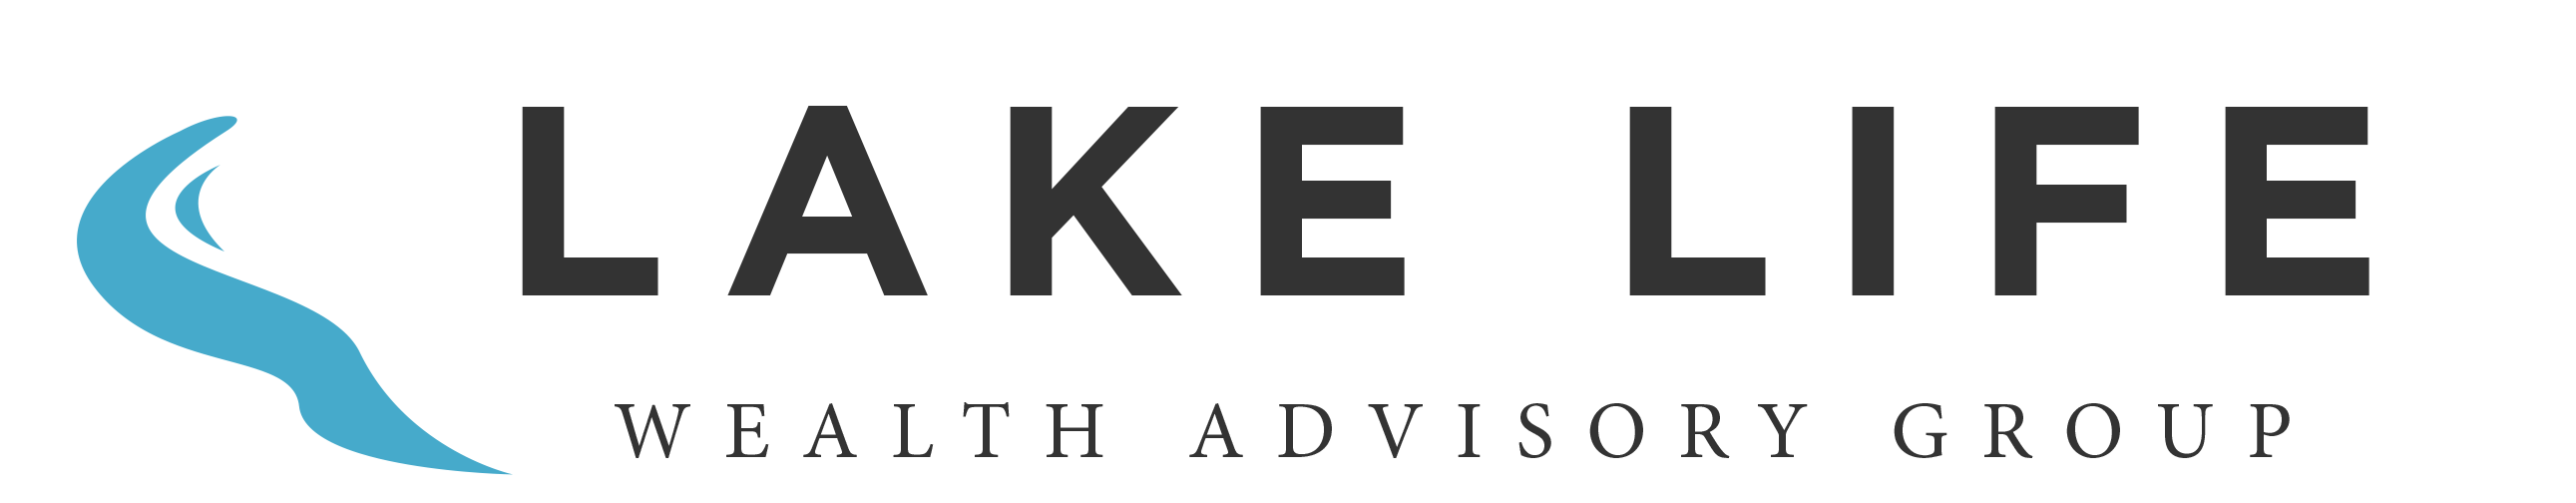 Lake Life Wealth Advisory Group